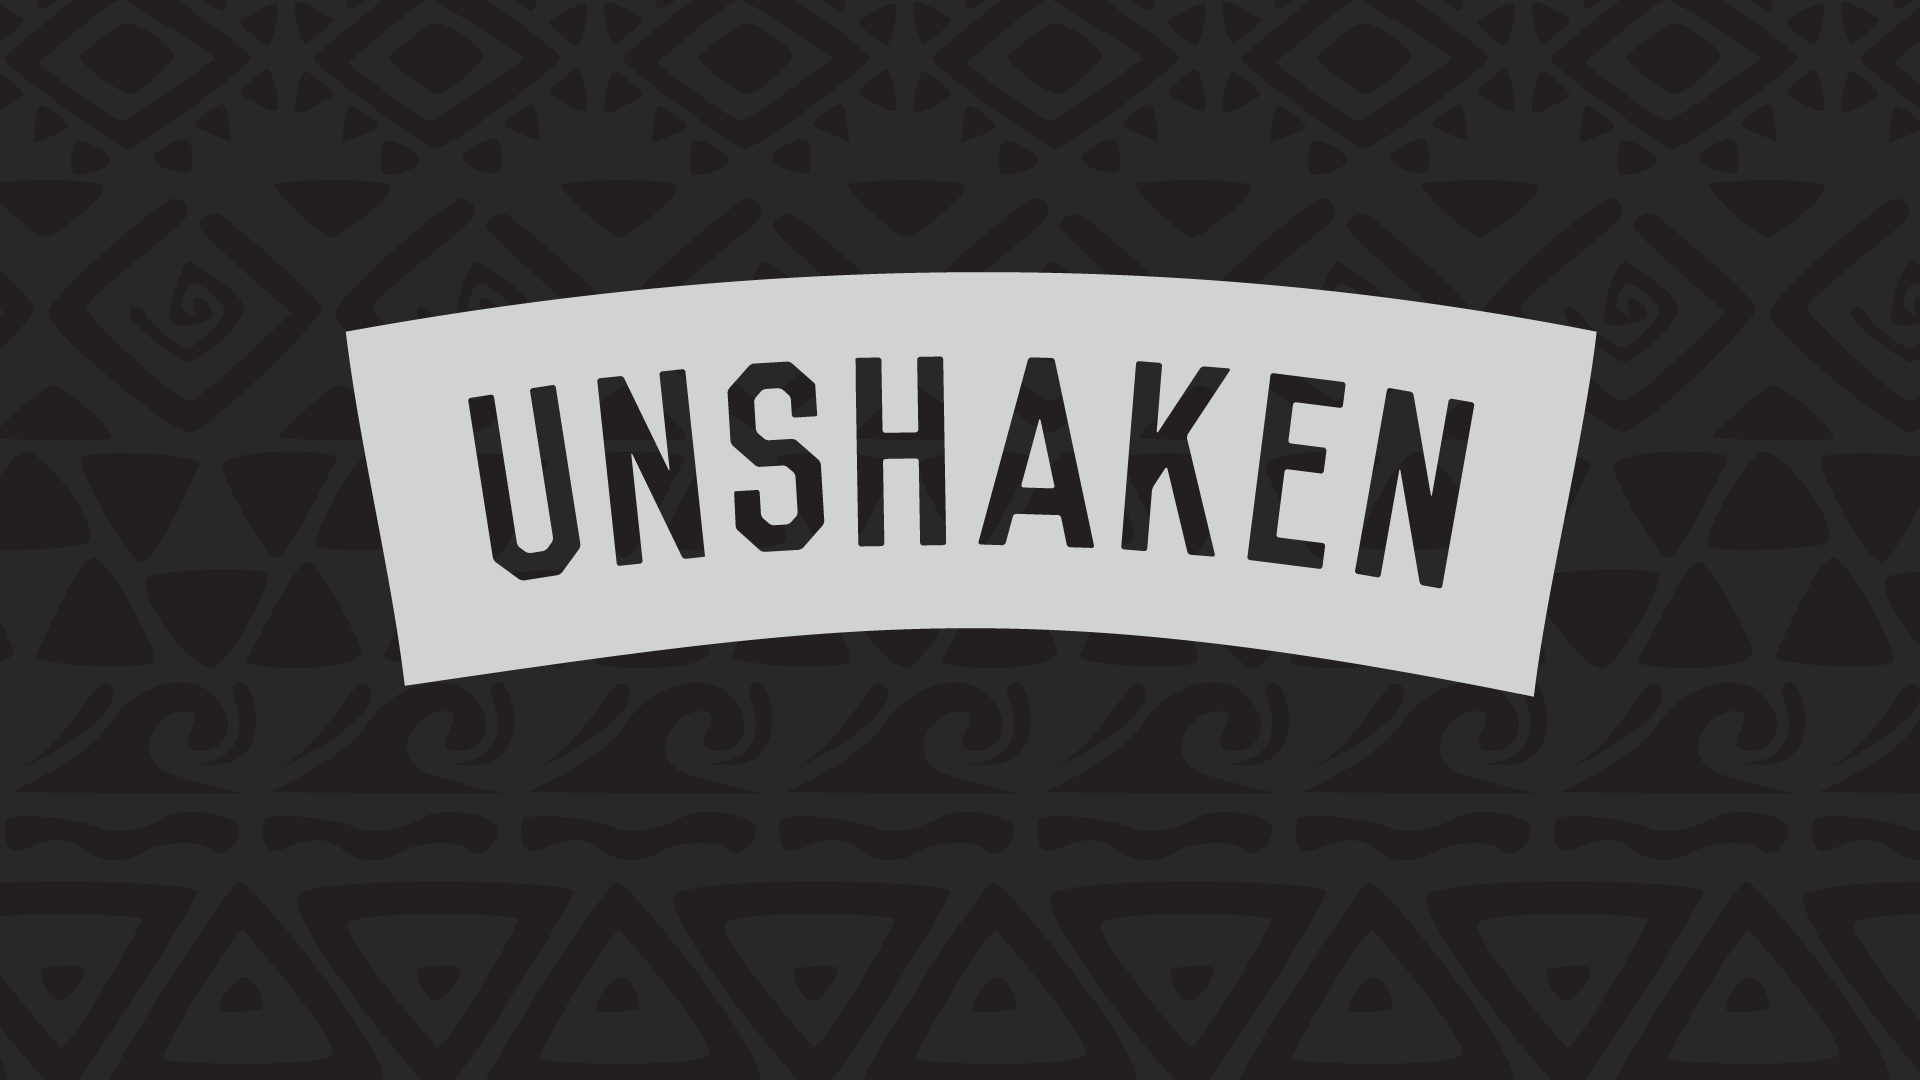 Unshaken by Drift